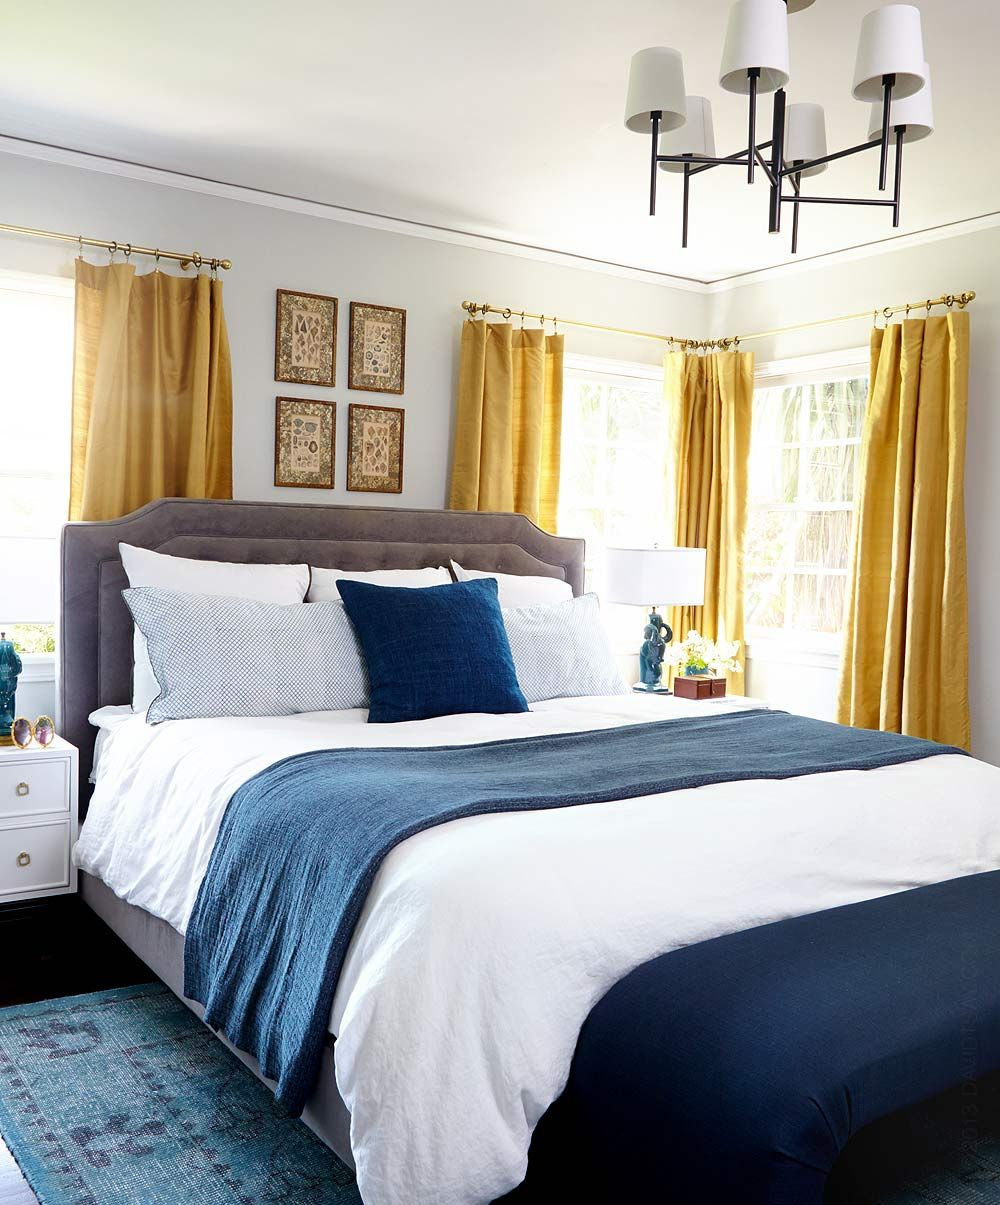 Beautiful Color Combos In This Gold Teal Marine Blue Bedroom From Emily Henderson Especially Love That Rug